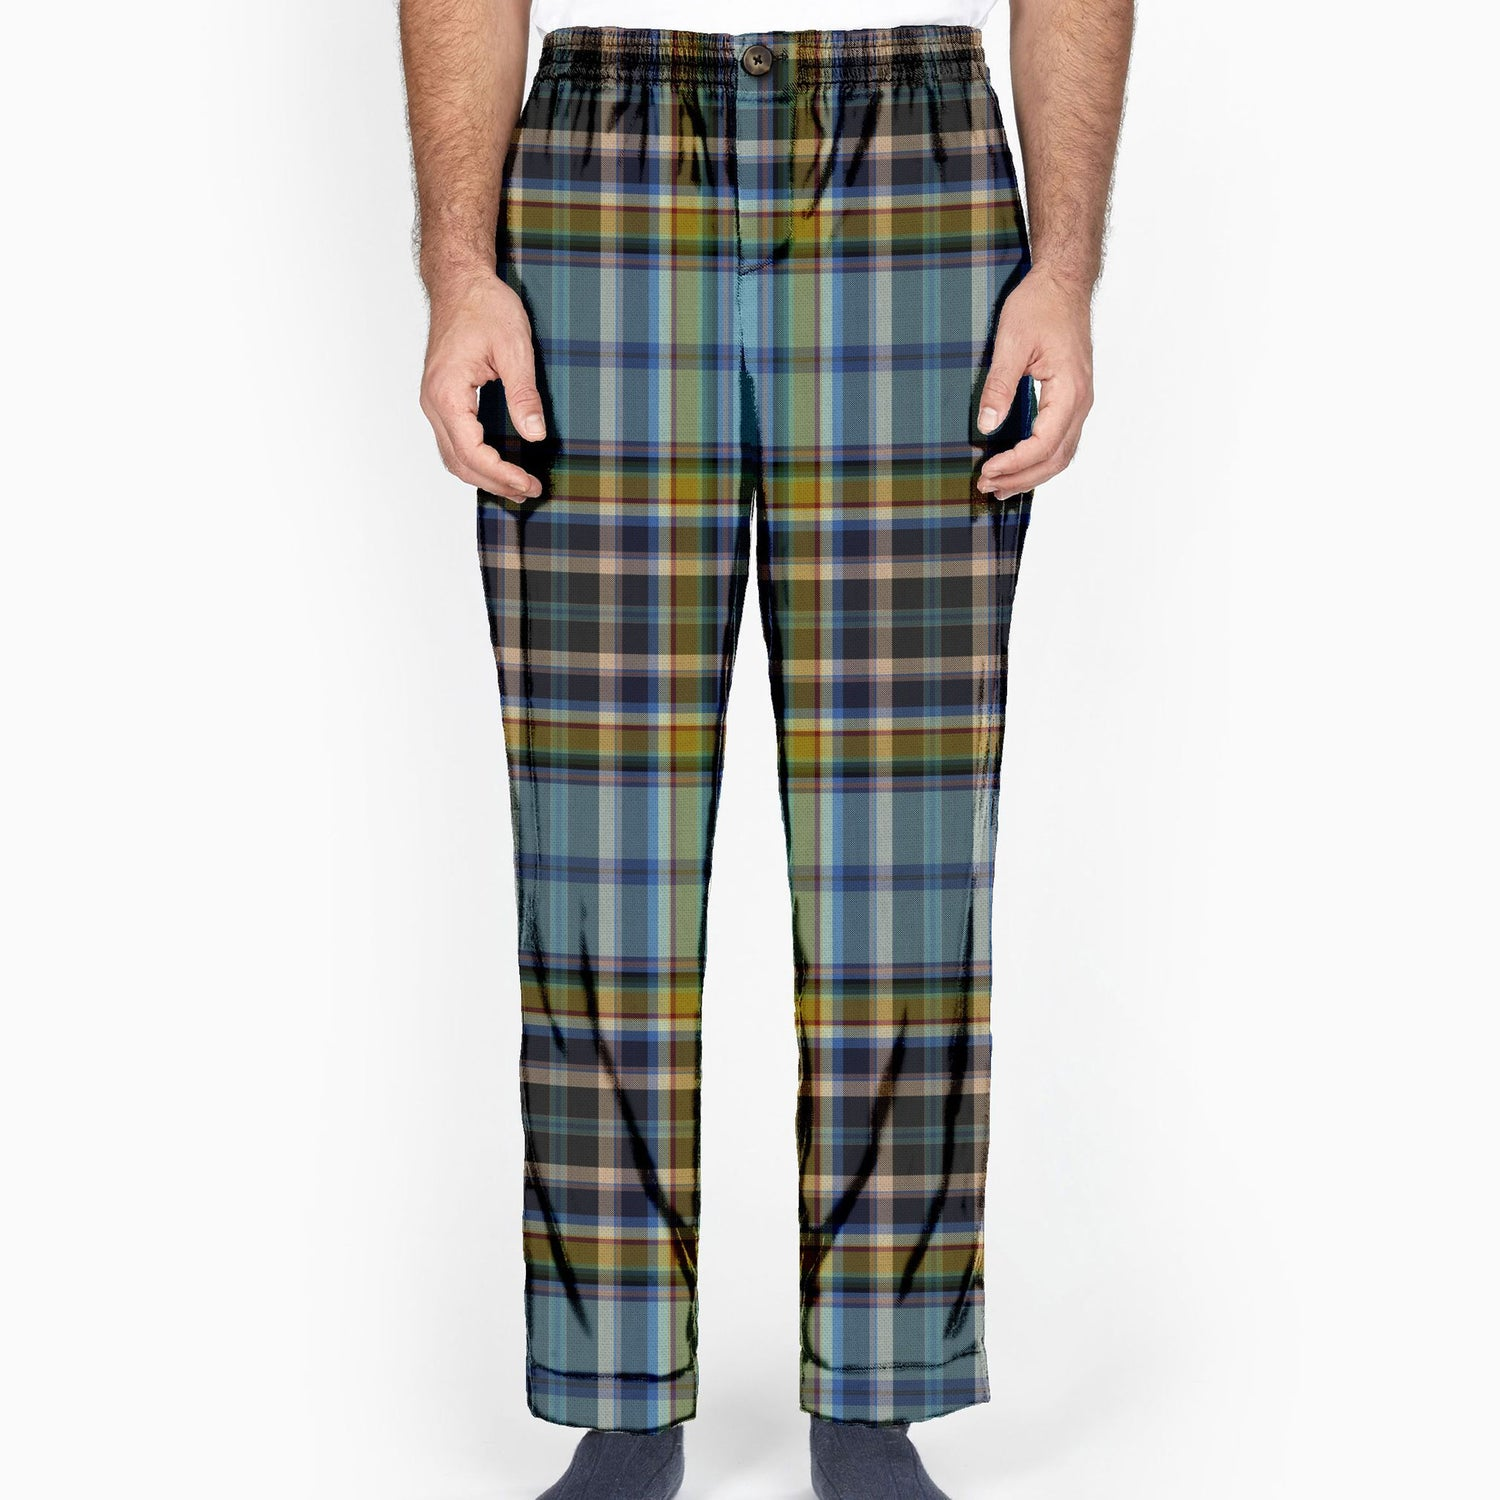 The Fellowship of the Ring Lounge Pant